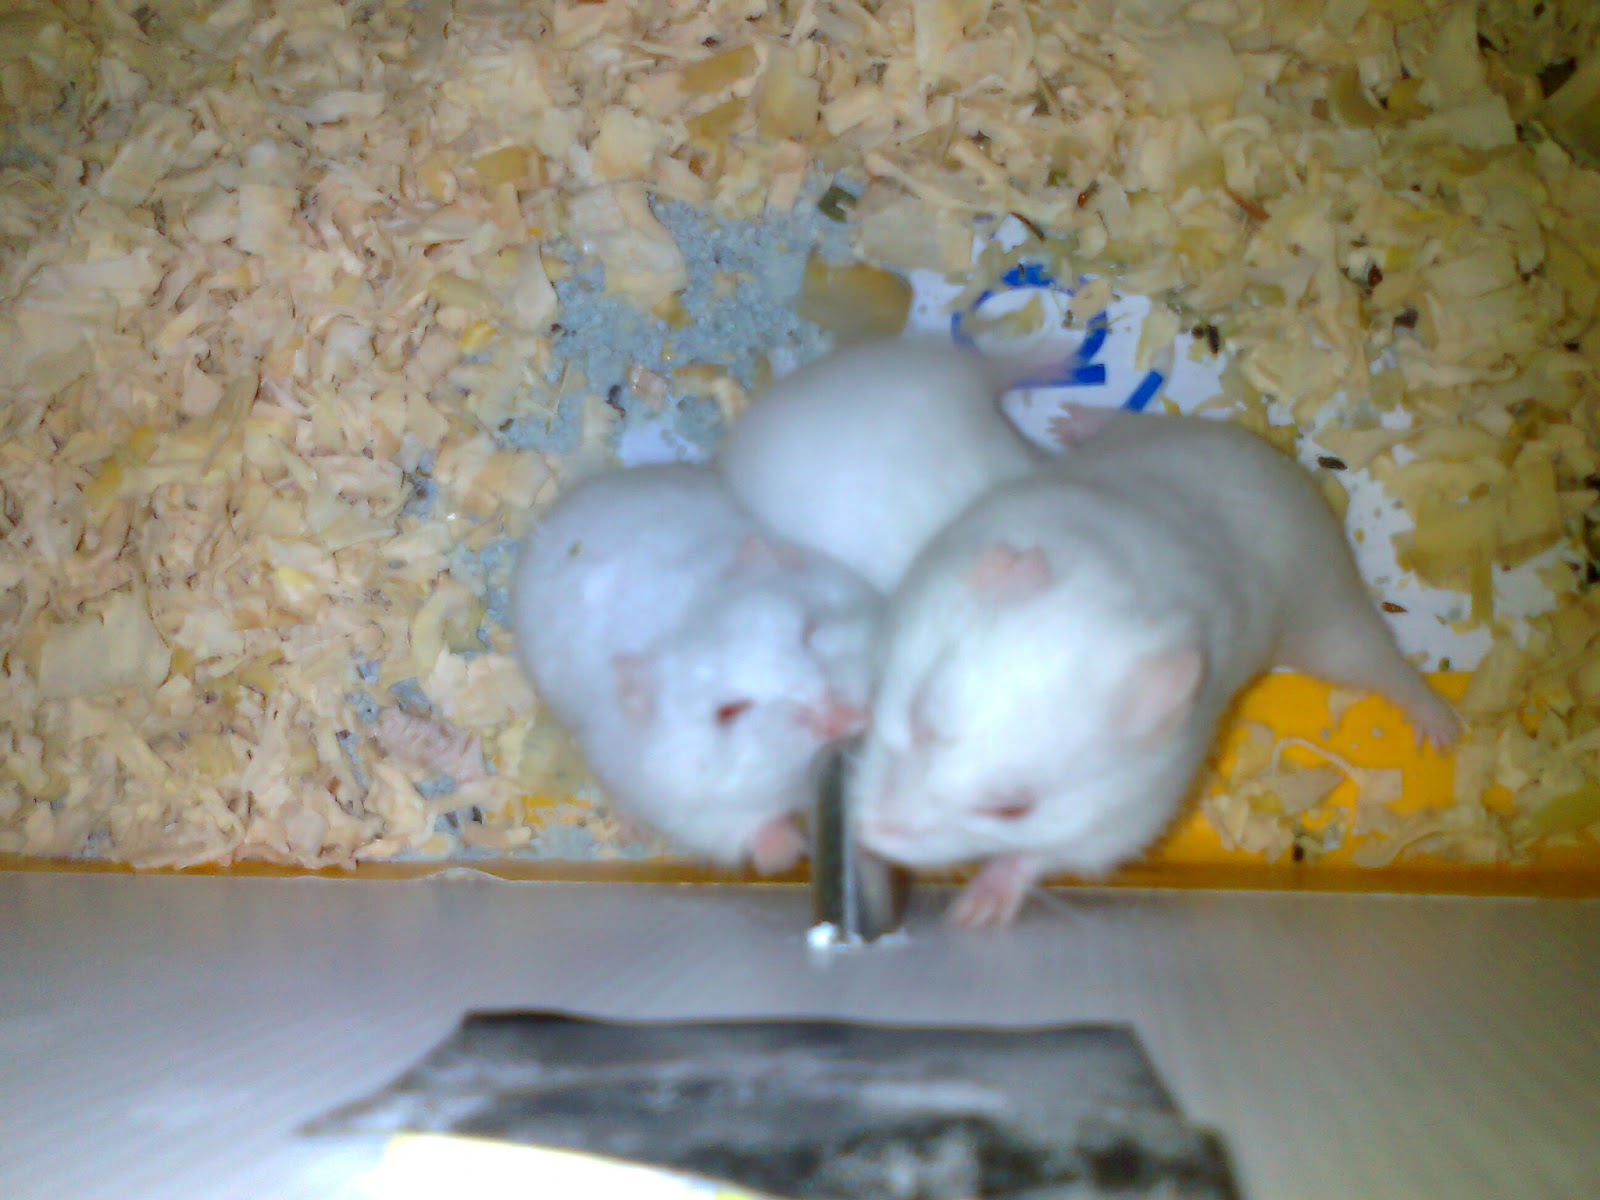 hamster parazit ilac? link between hpv and esophageal cancer